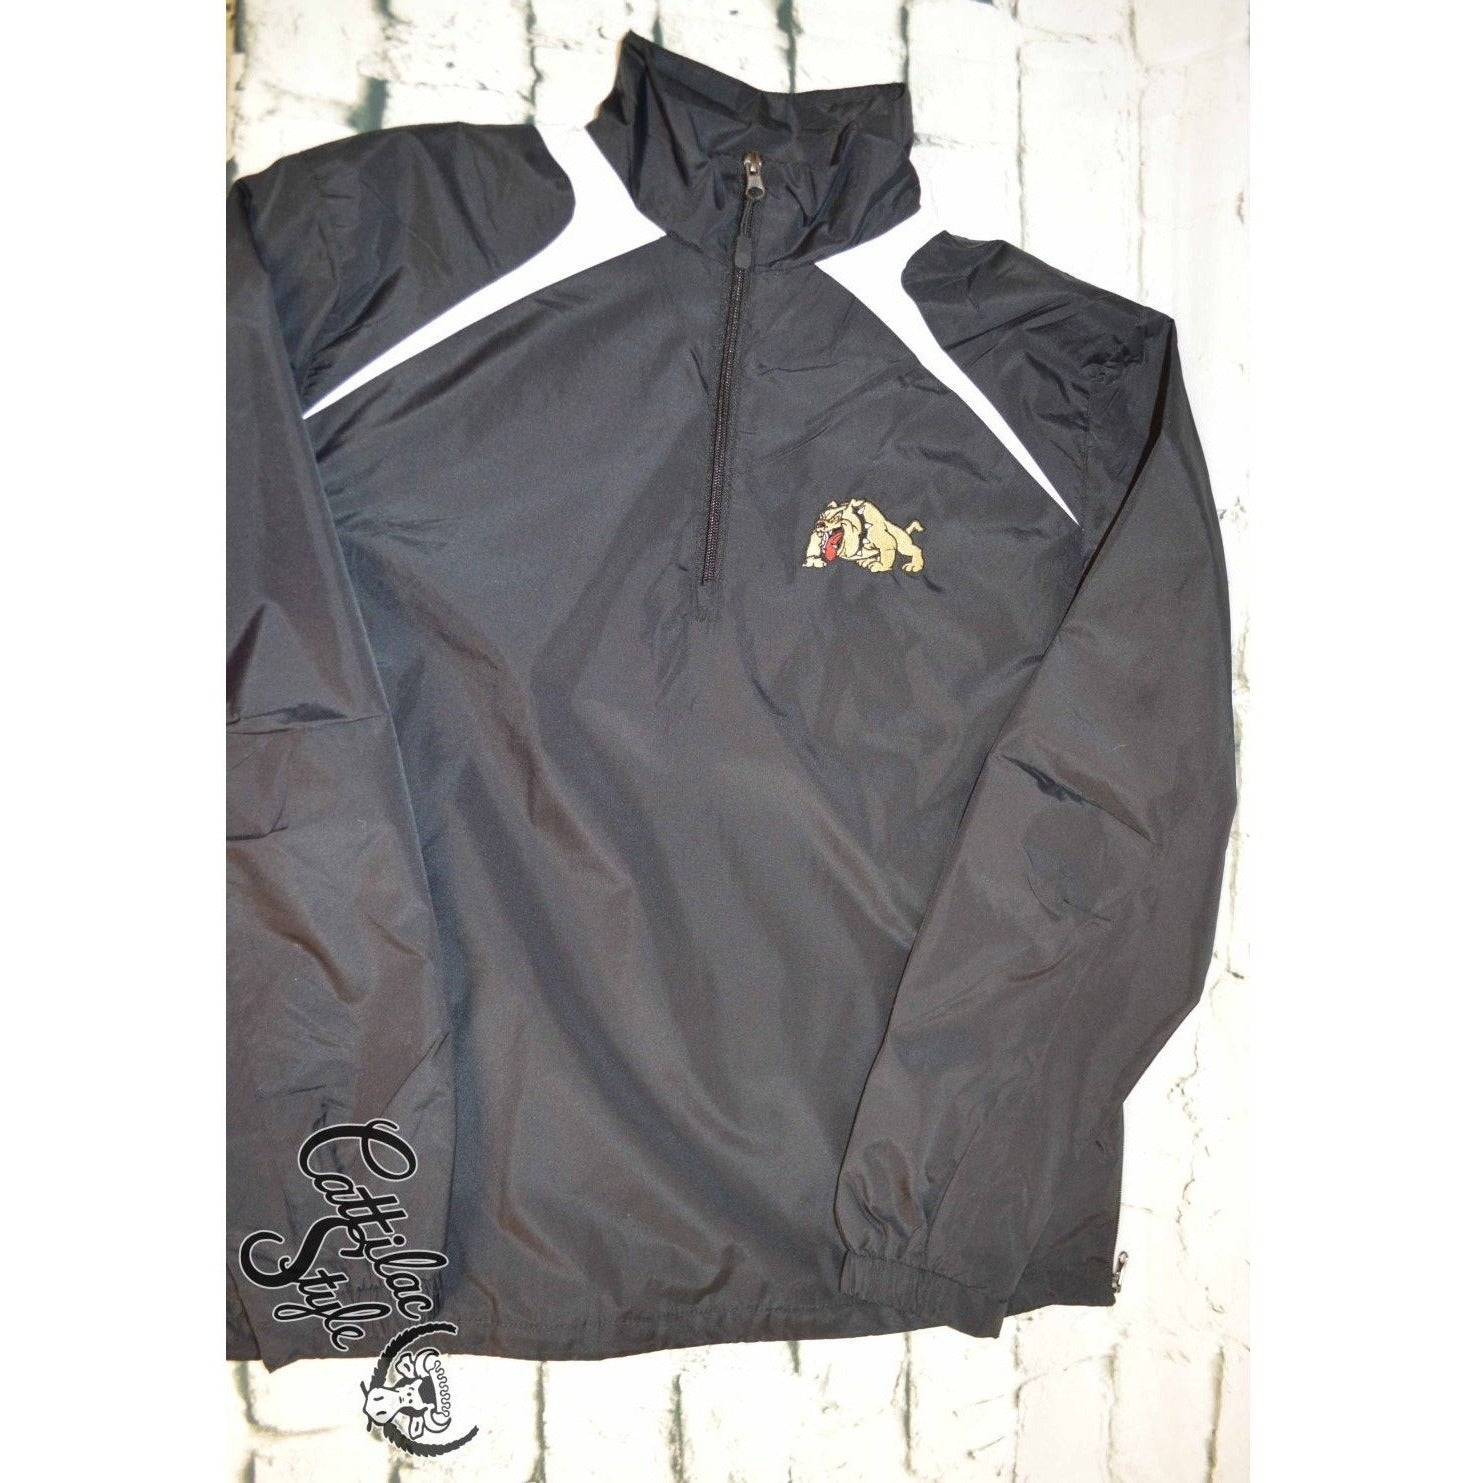 Clyde Bulldogs - 3/4 Zip Wind Jacket